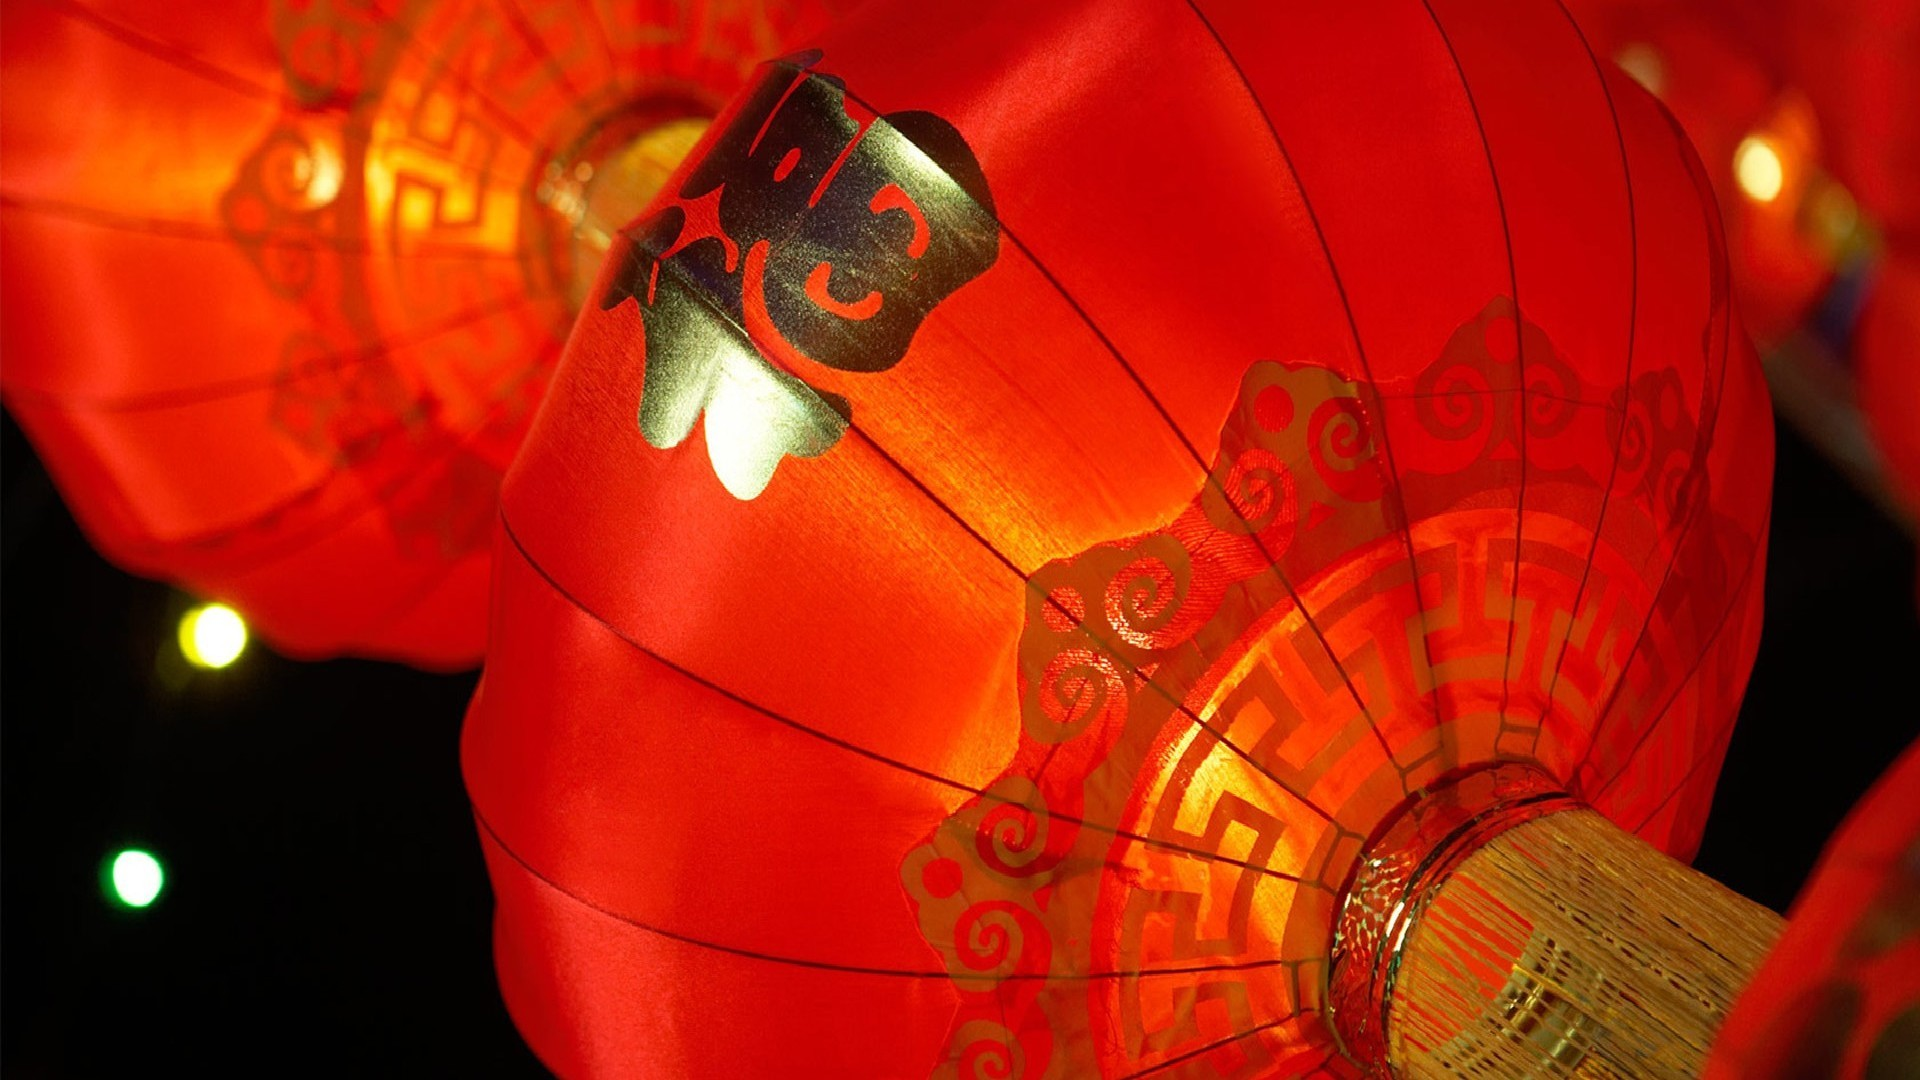 1920x1200 download chinese new year hd wallpaper